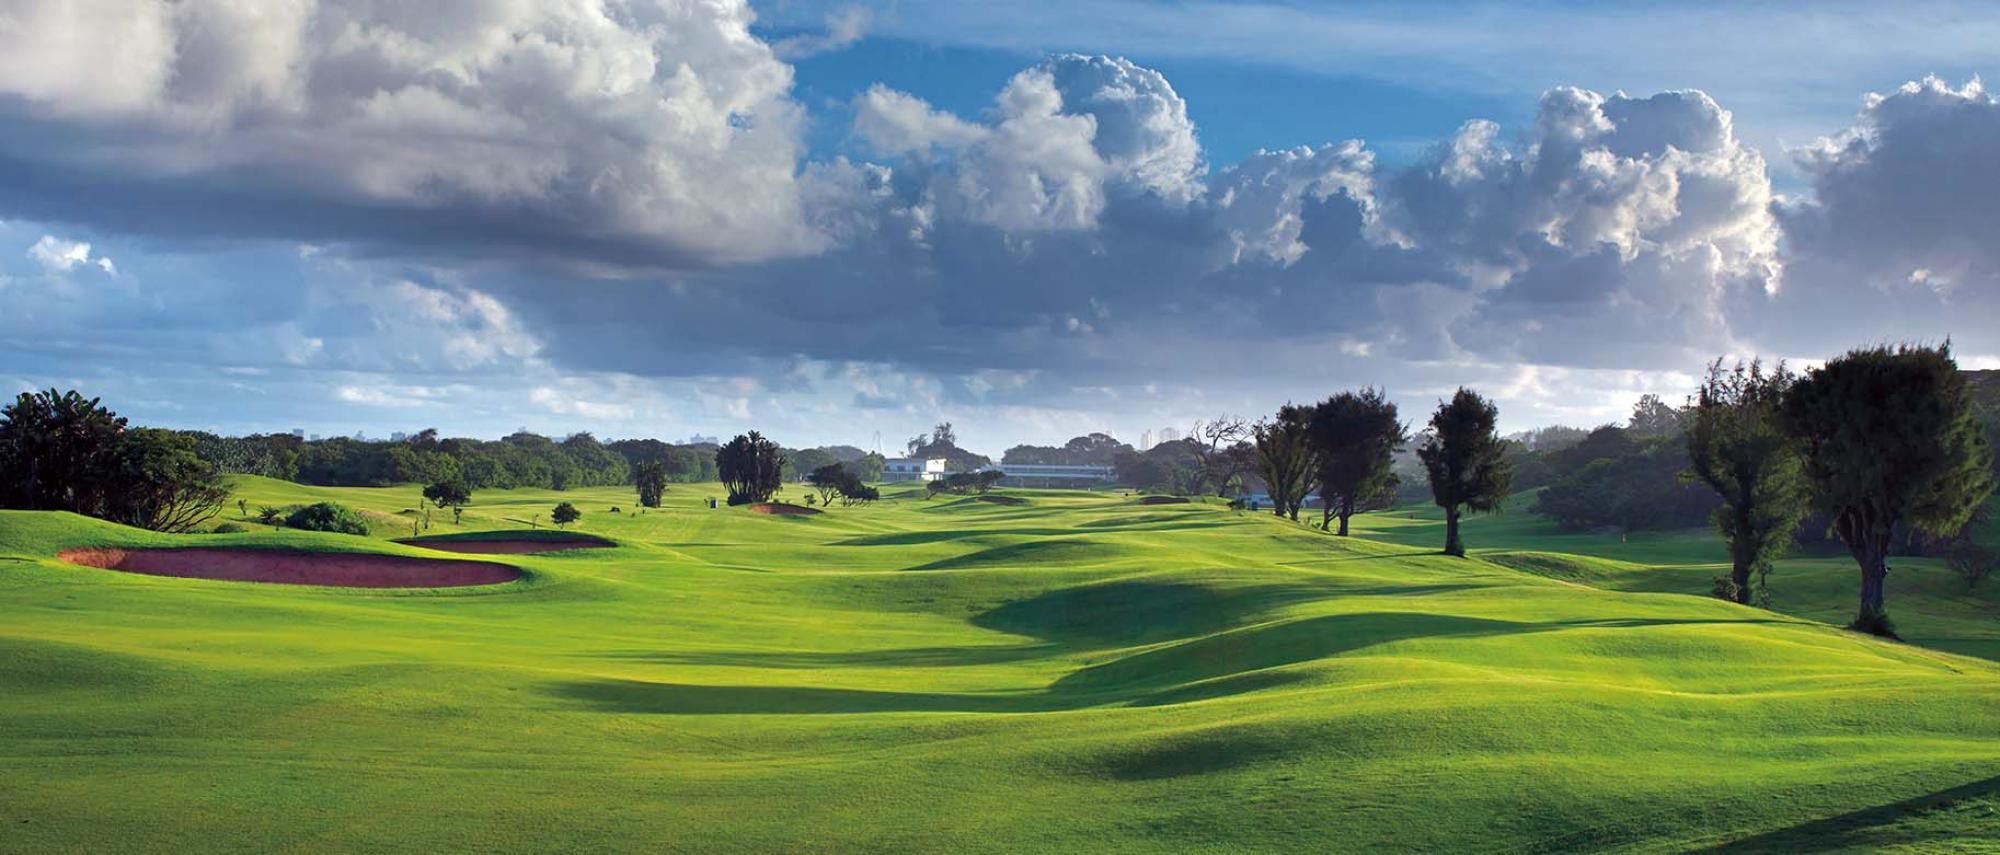 https://bubo.sk/uploads/galleries/7483/the-durban-country-clubs-picturesque-golf-course-in-pleasing-south-africa.jpg